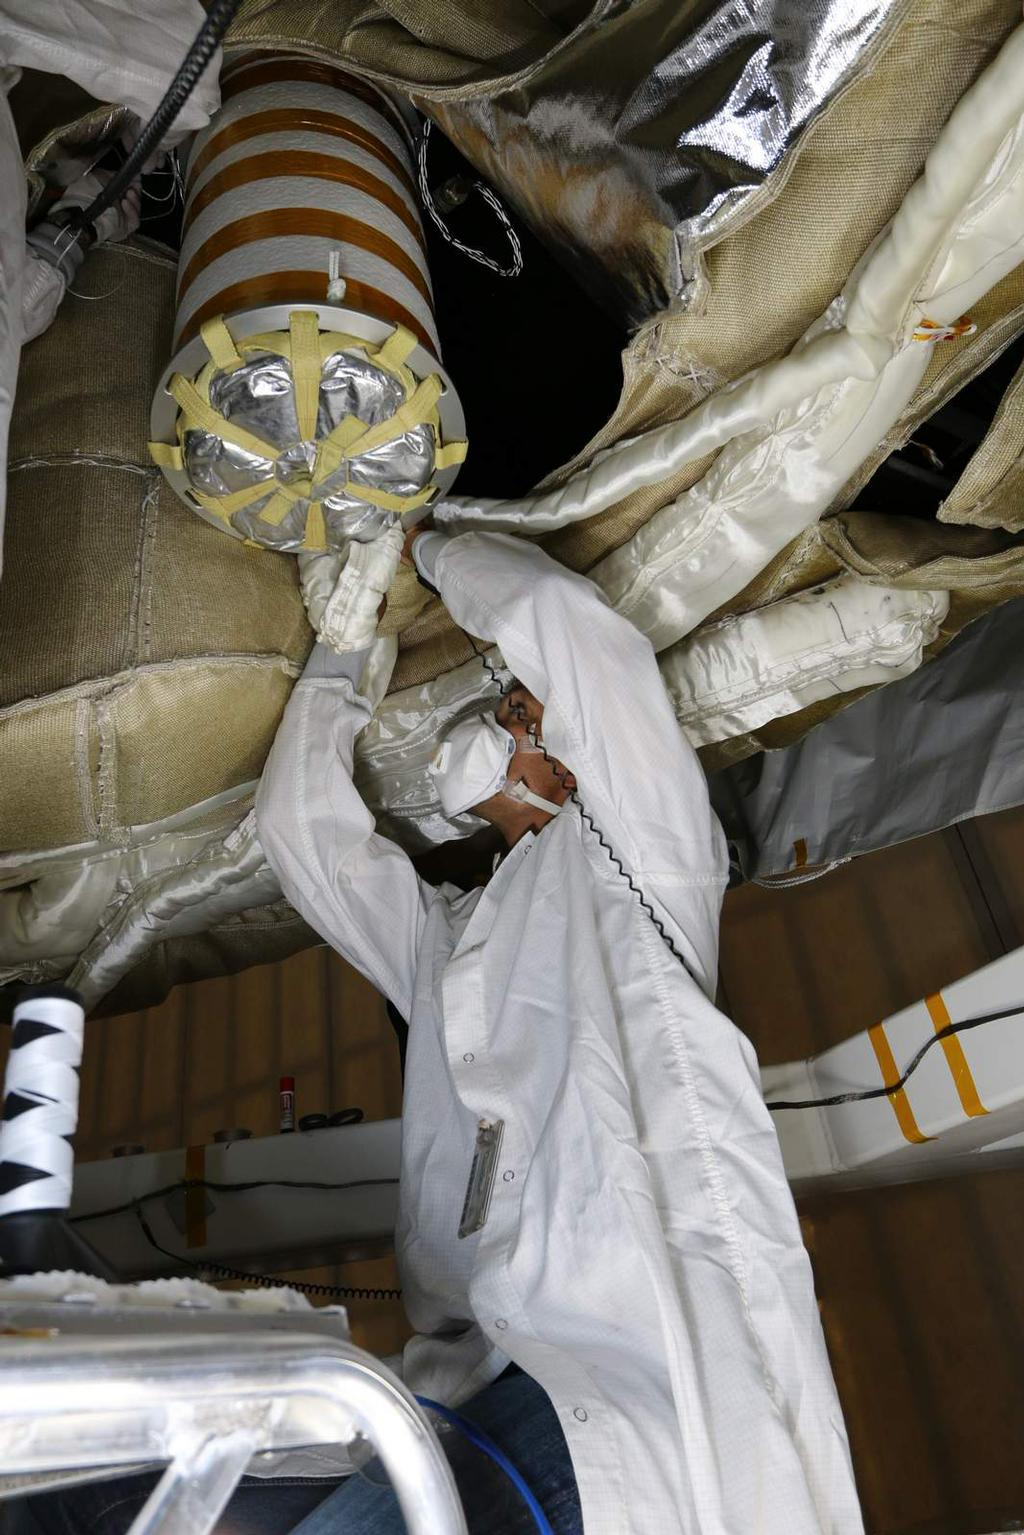 An engineer works on the Parachute Deployment Device of the Low Density Supersonic Decelerator test vehicle in this image taken at the Missile Assembly Building at the US Navy's Pacific Missile Range Facility in Kaua'i, Hawaii.